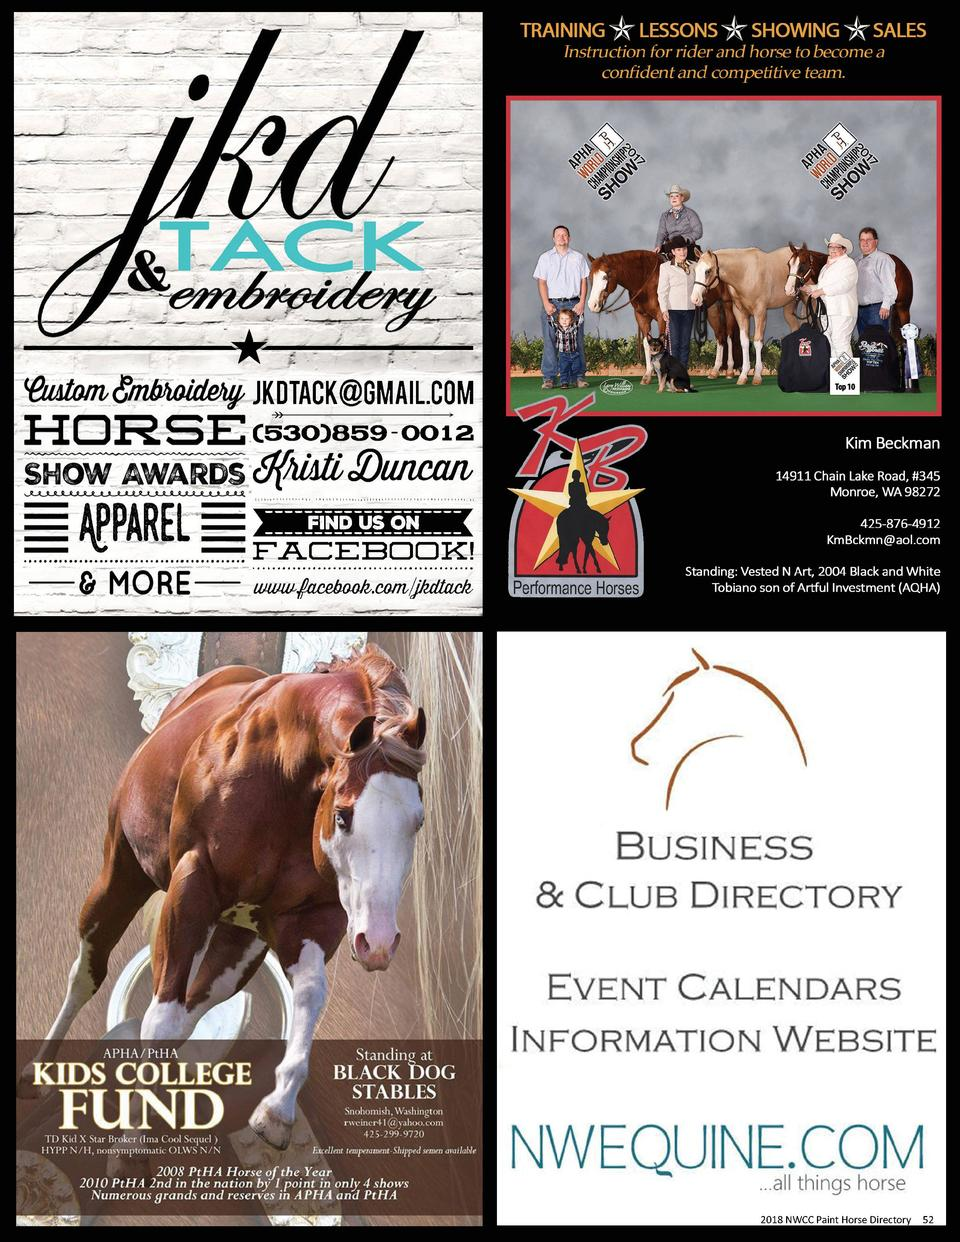 2018 2017 NWCC NWCC Paint Paint Horse Horse Directory Directory  52 52